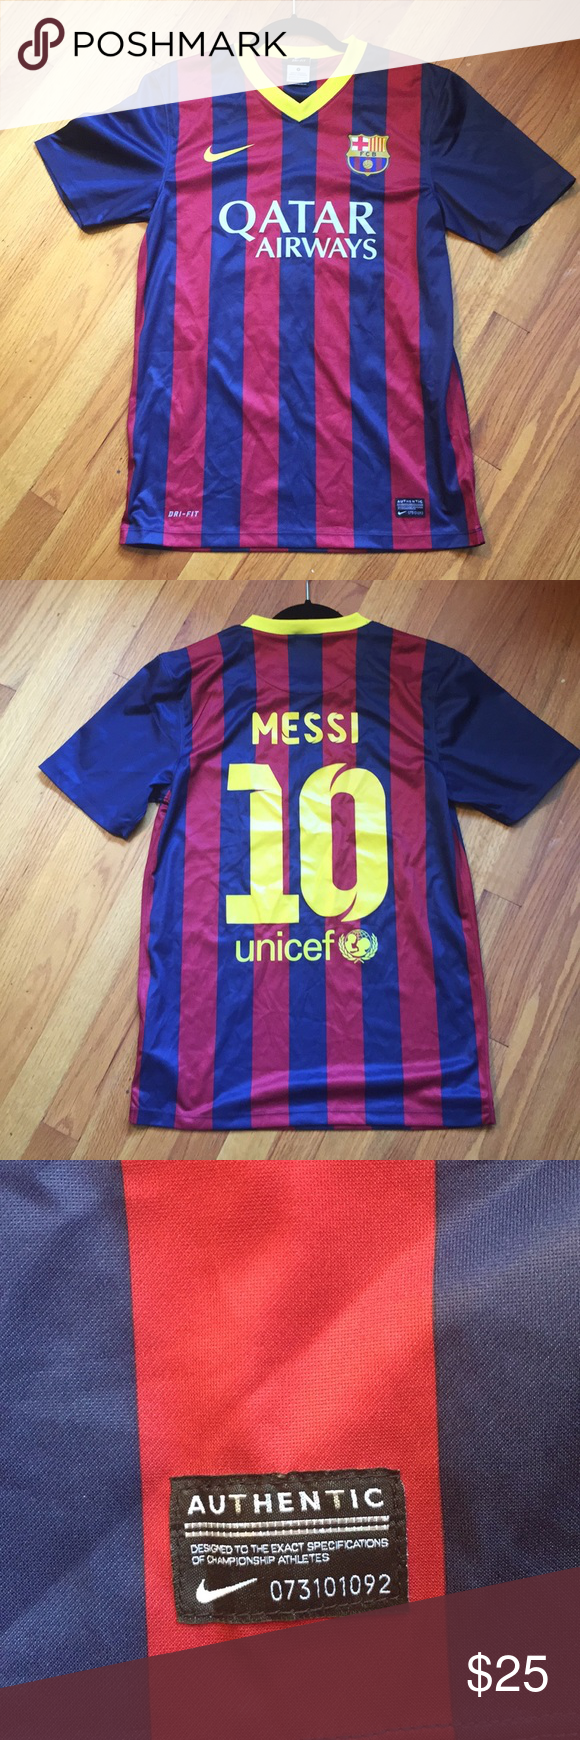 5109b0b5d Lionel Messi FC Barcelona Soccer Jersey Nike Smoke free and pet free home.  Pit to